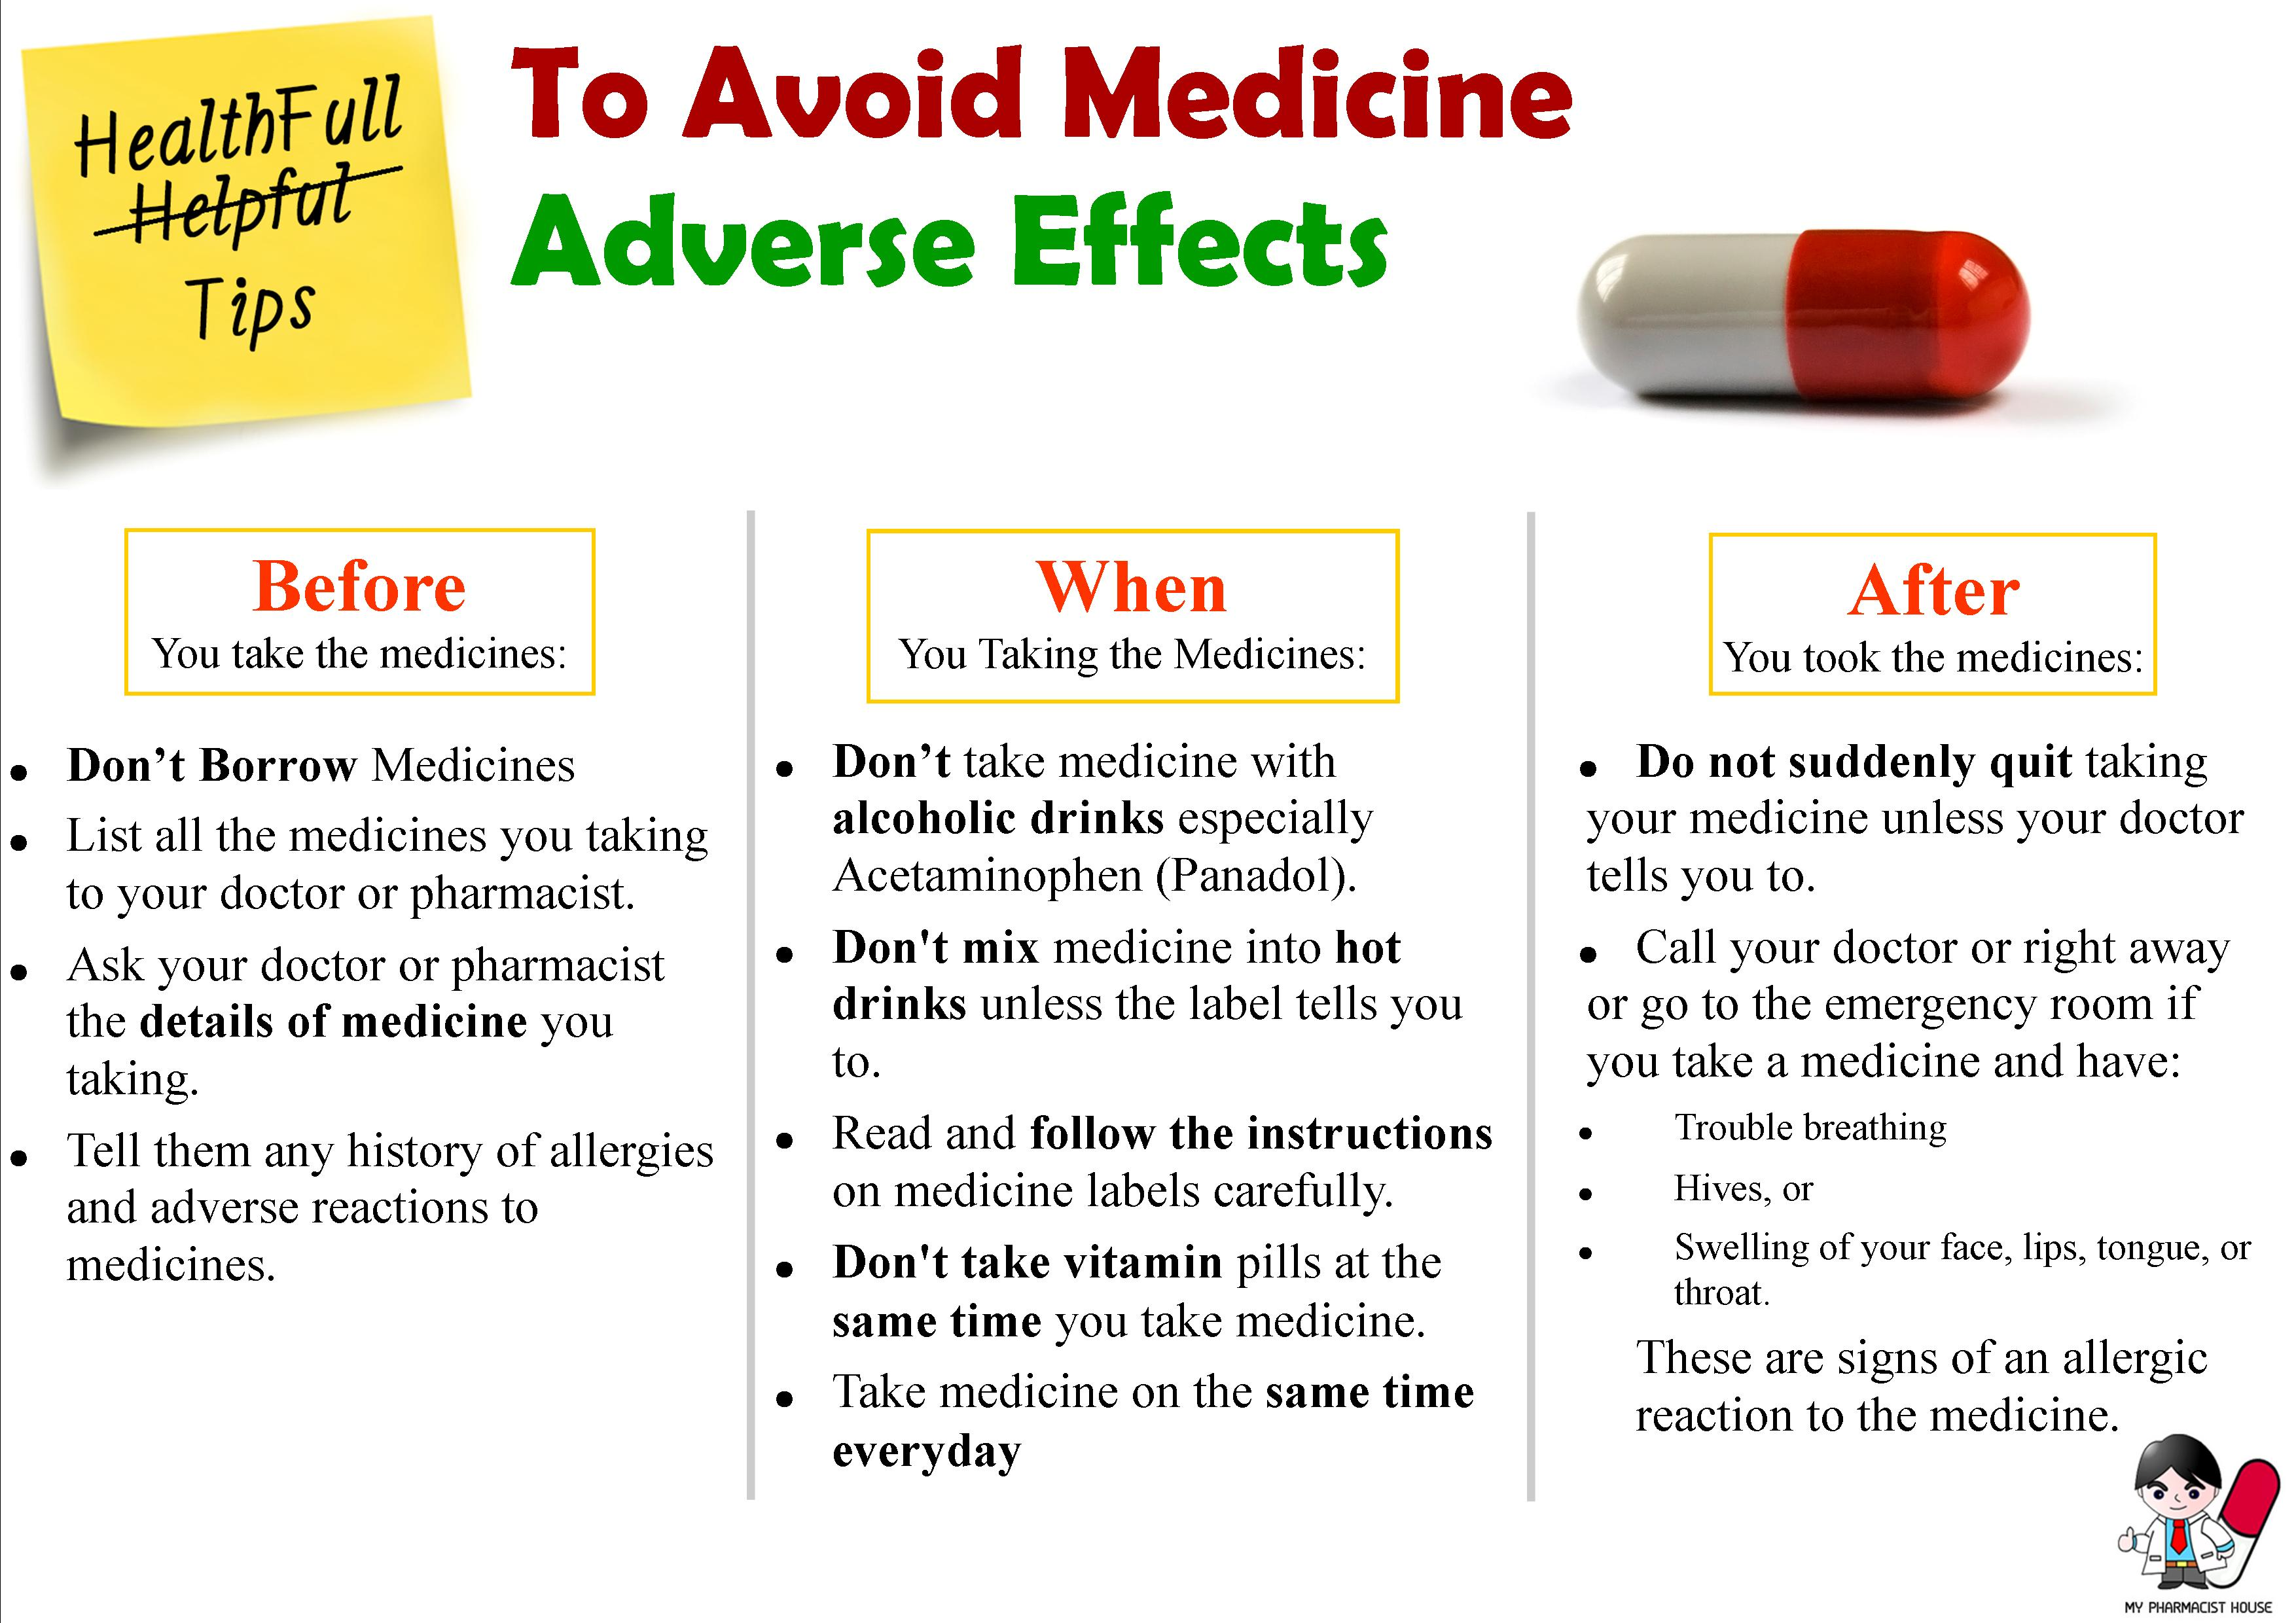 Healthful Tips To Avoid Medicine Adverse Effects